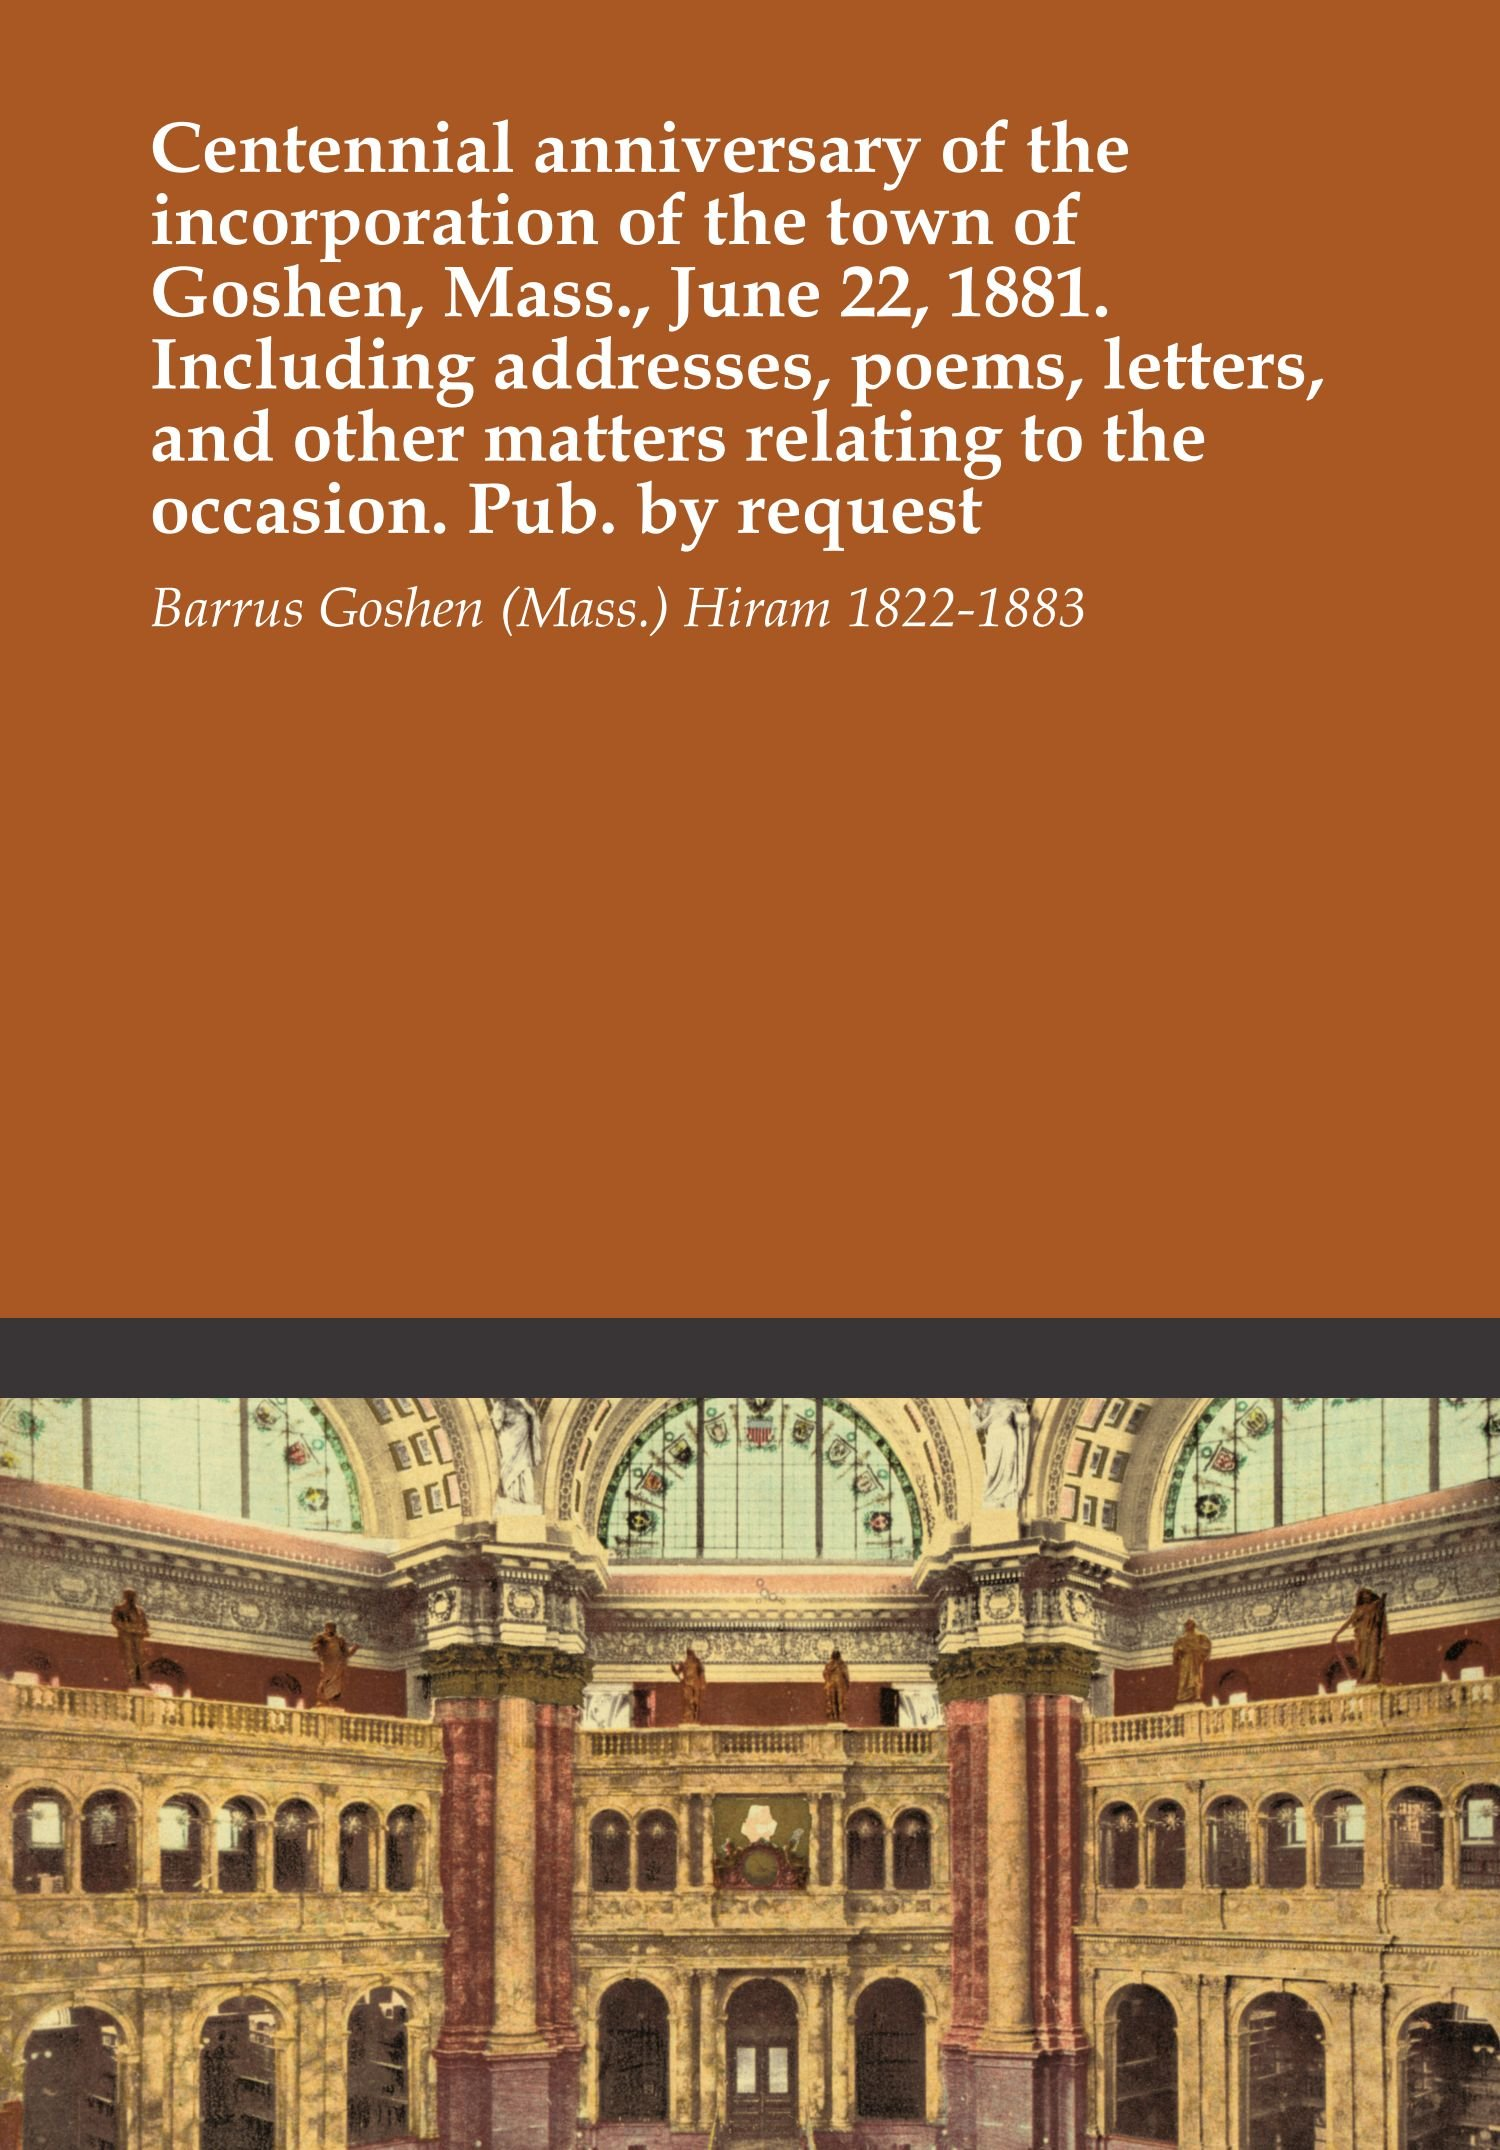 Download Centennial anniversary of the incorporation of the town of Goshen, Mass., June 22, 1881. Including addresses, poems, letters, and other matters relating to the occasion. Pub. by request PDF